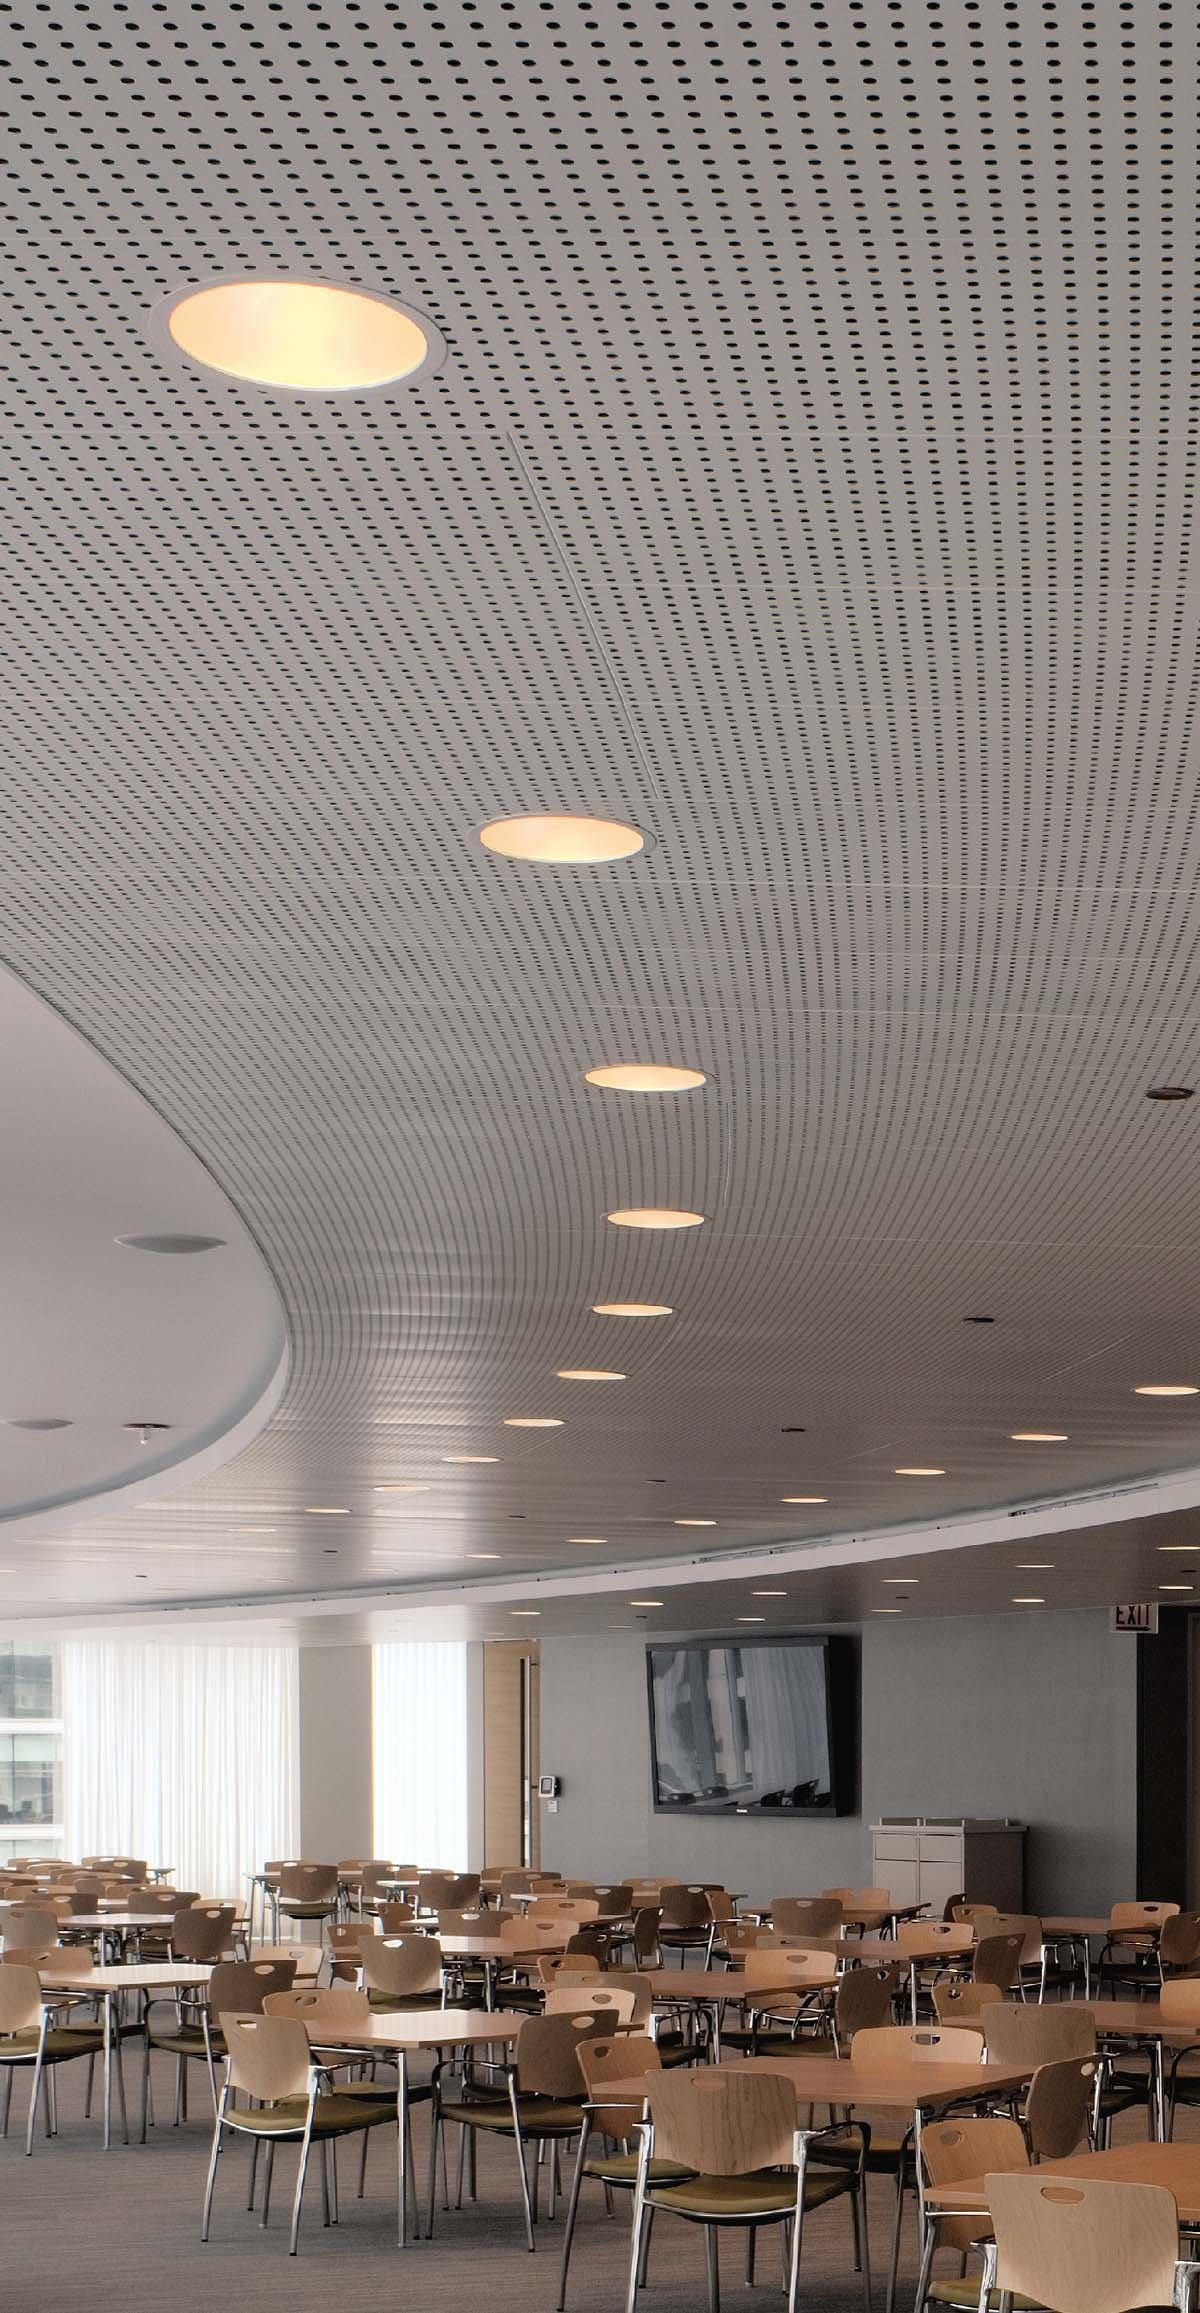 Libretto Gridless Metal Ceiling System From Usg